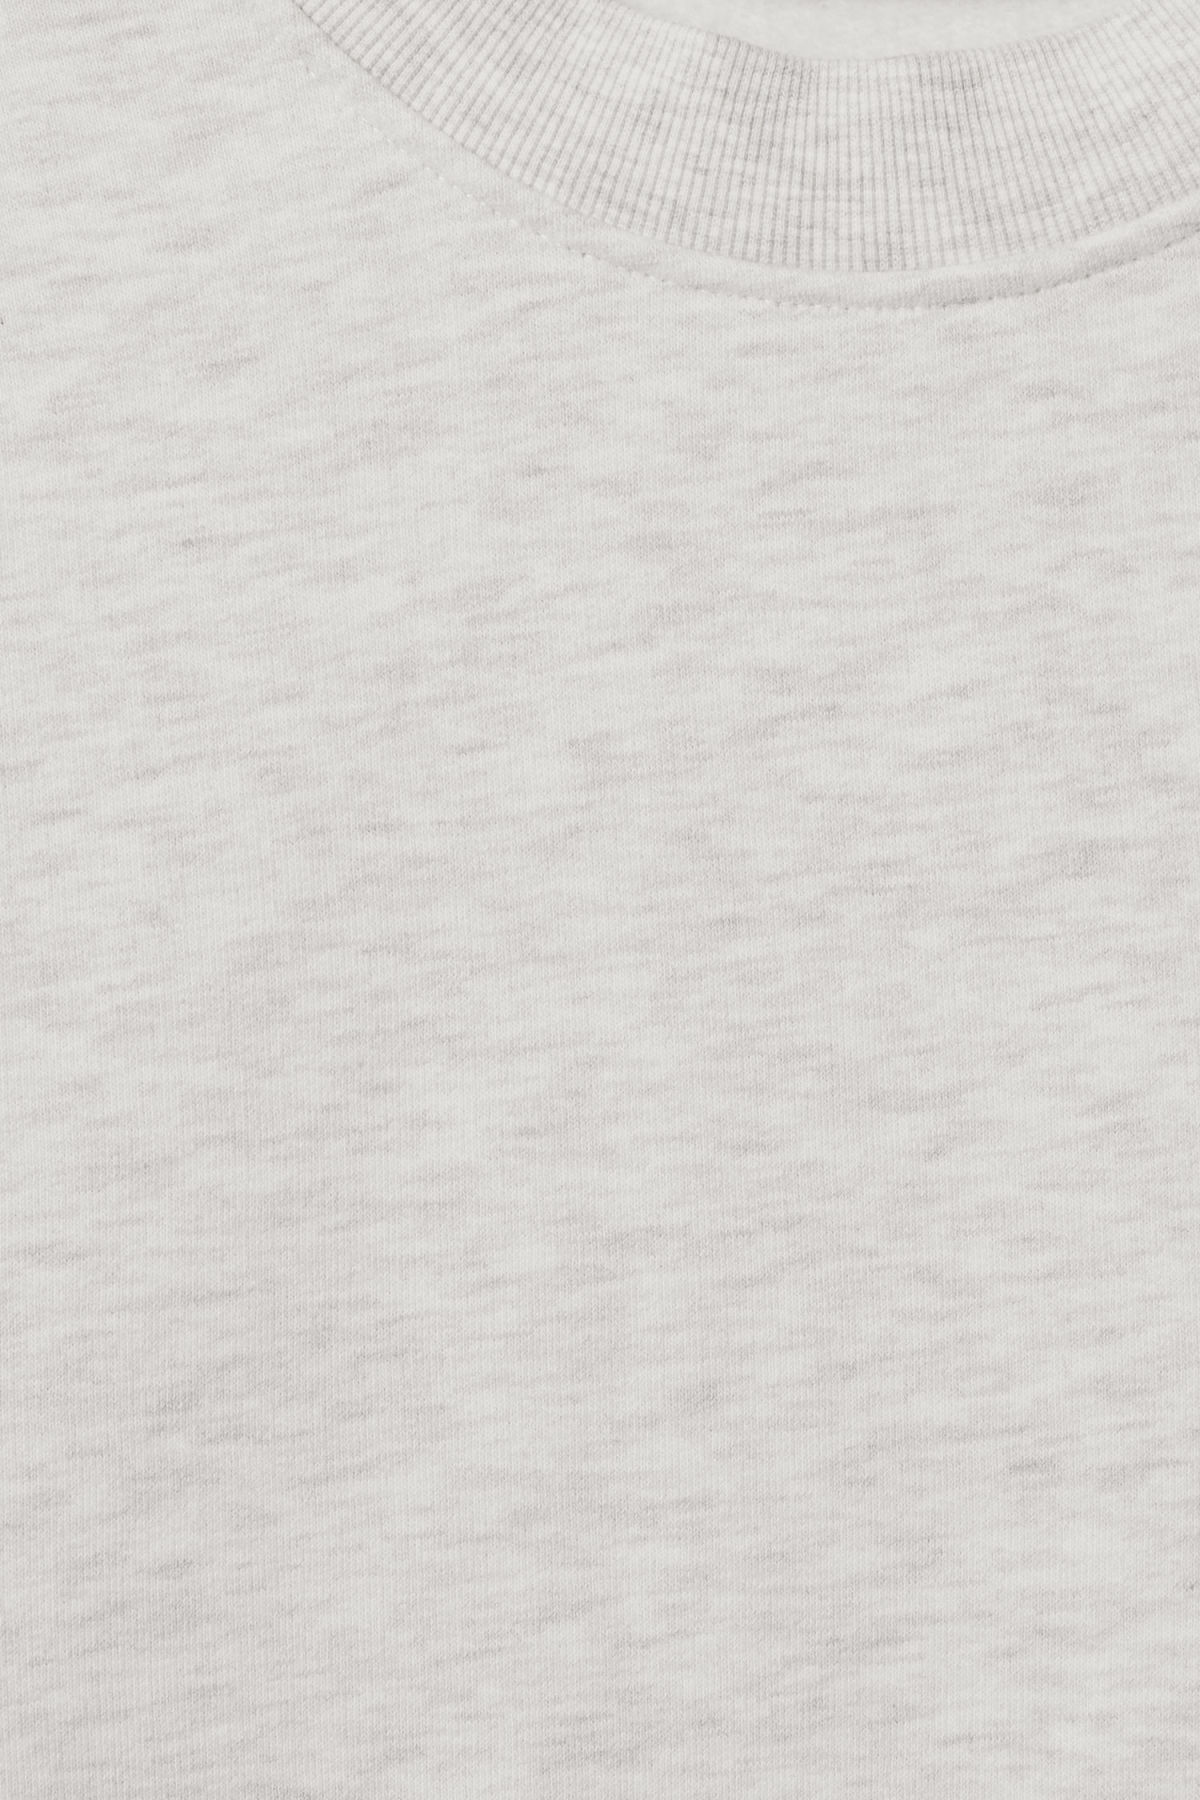 Detailed image of Weekday score sweatshirt in white